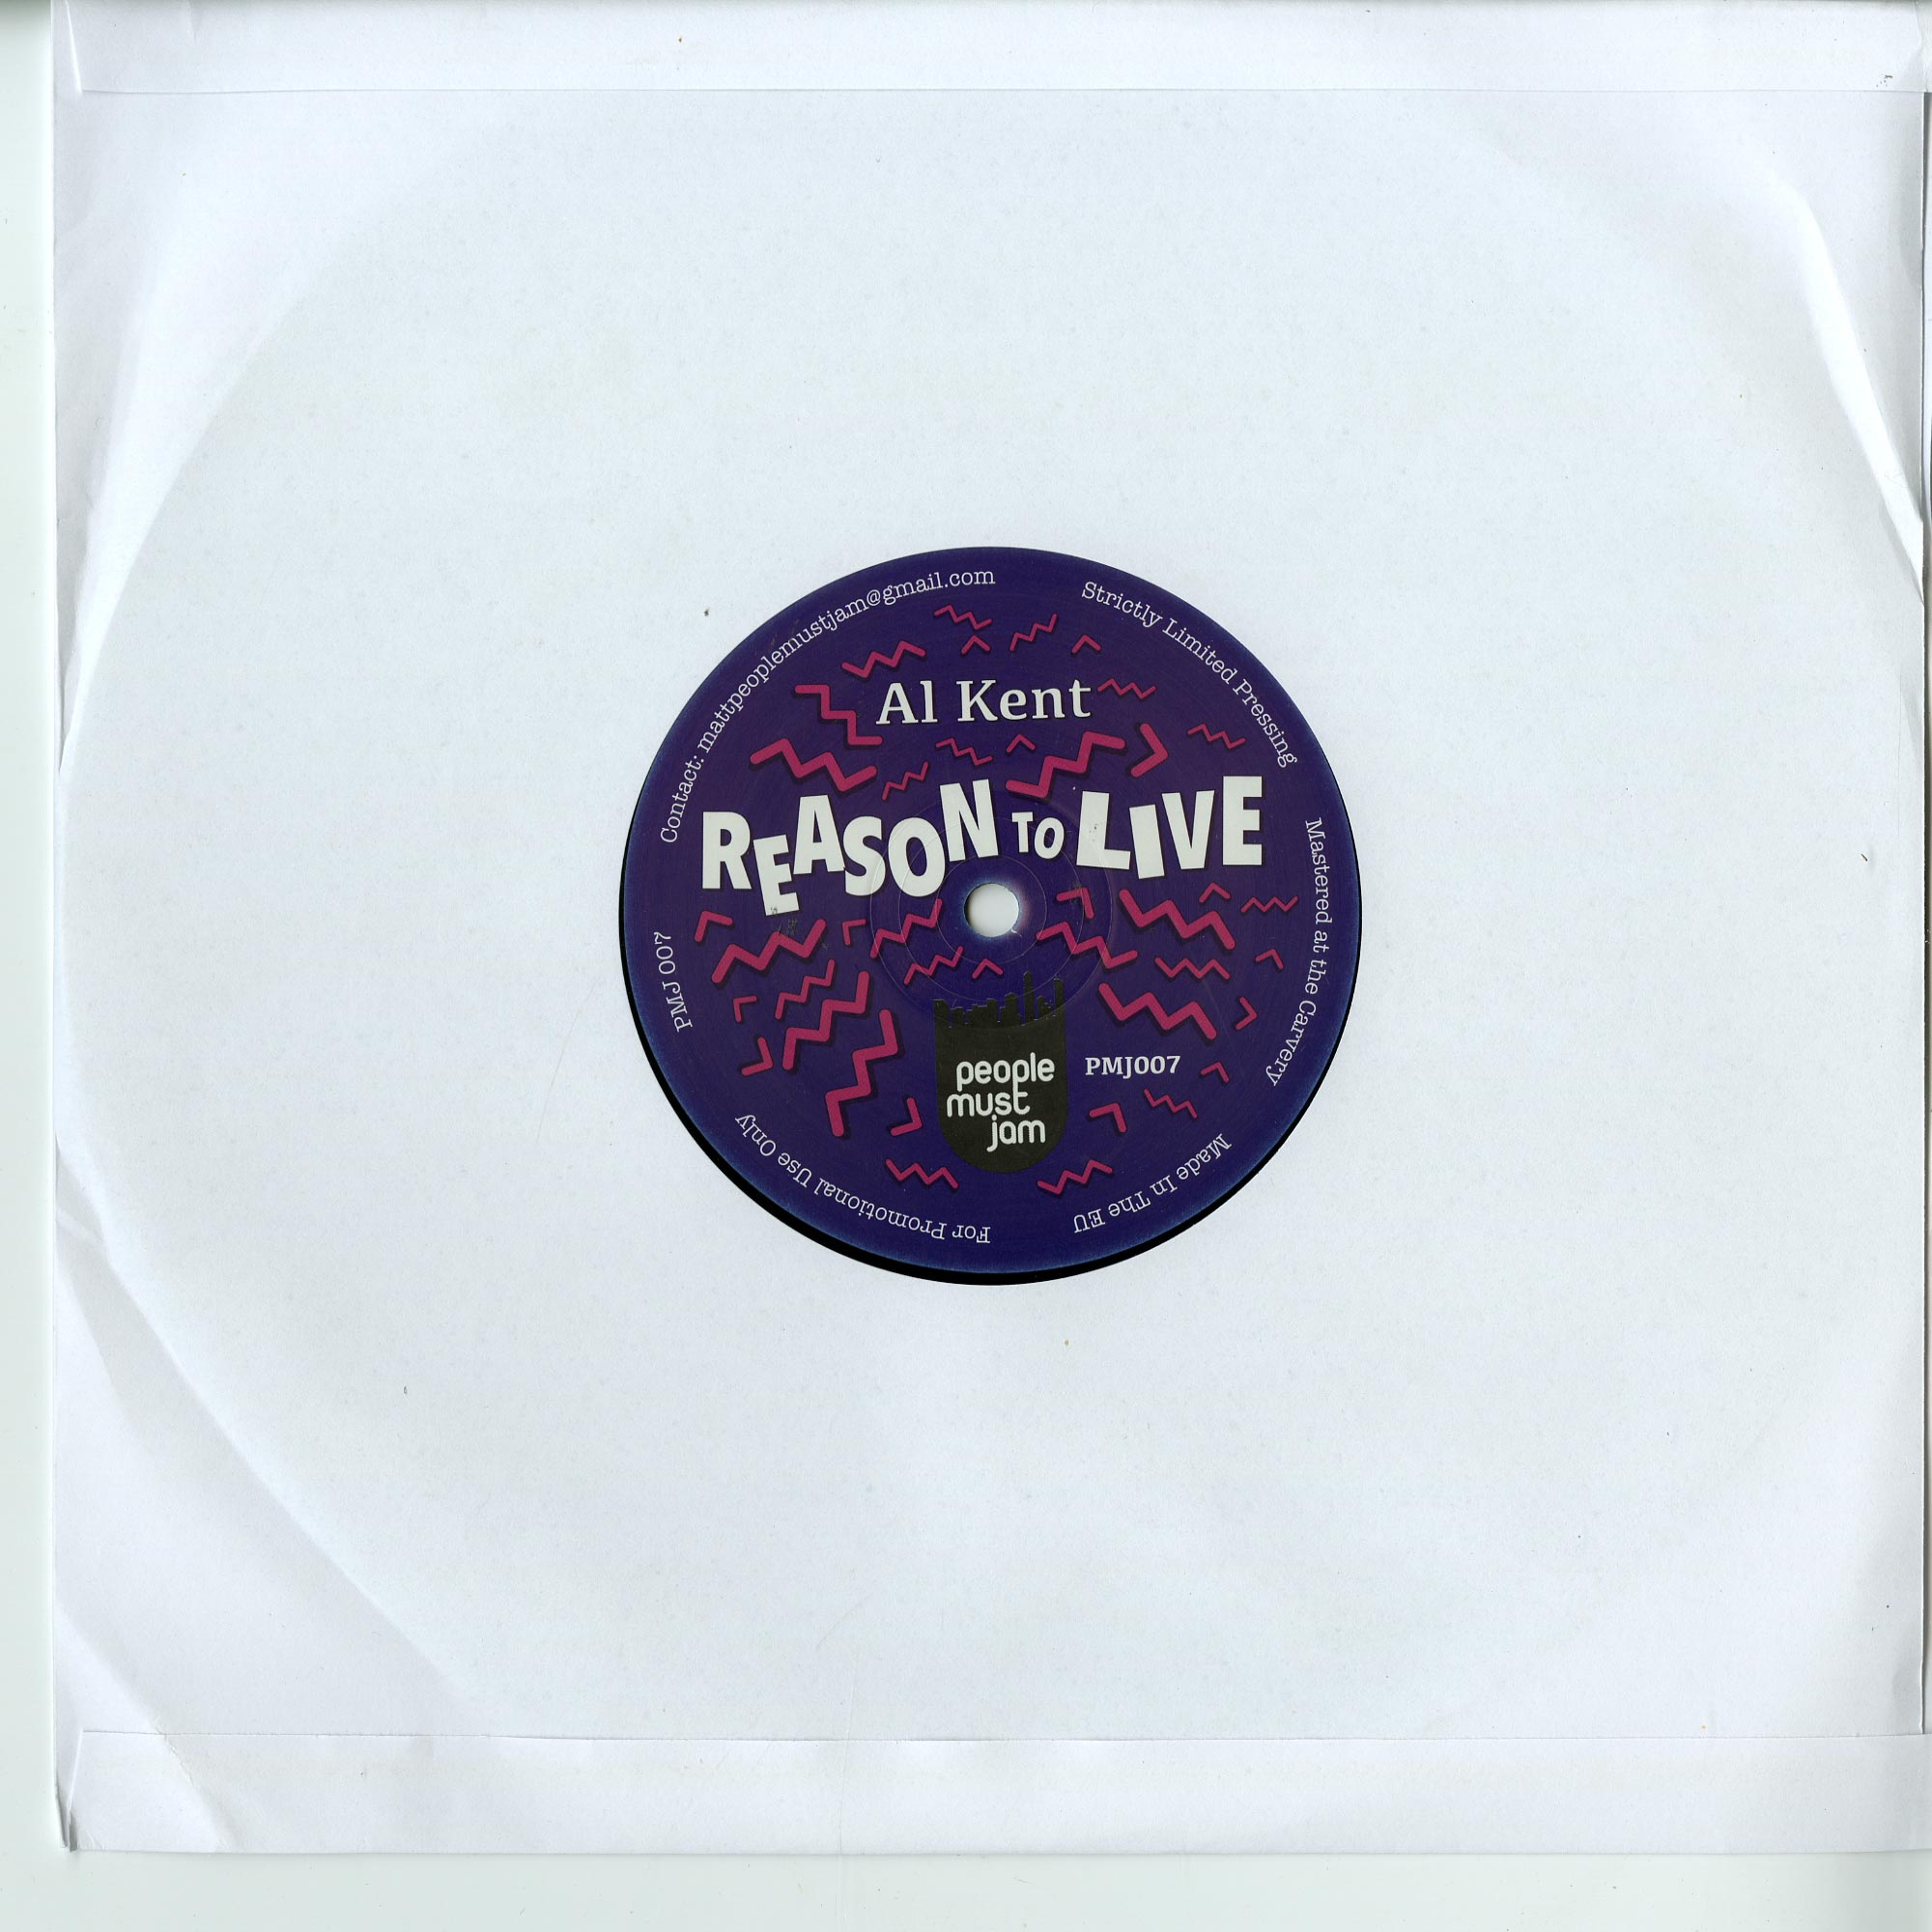 Al Kent - REASON TO LIVE